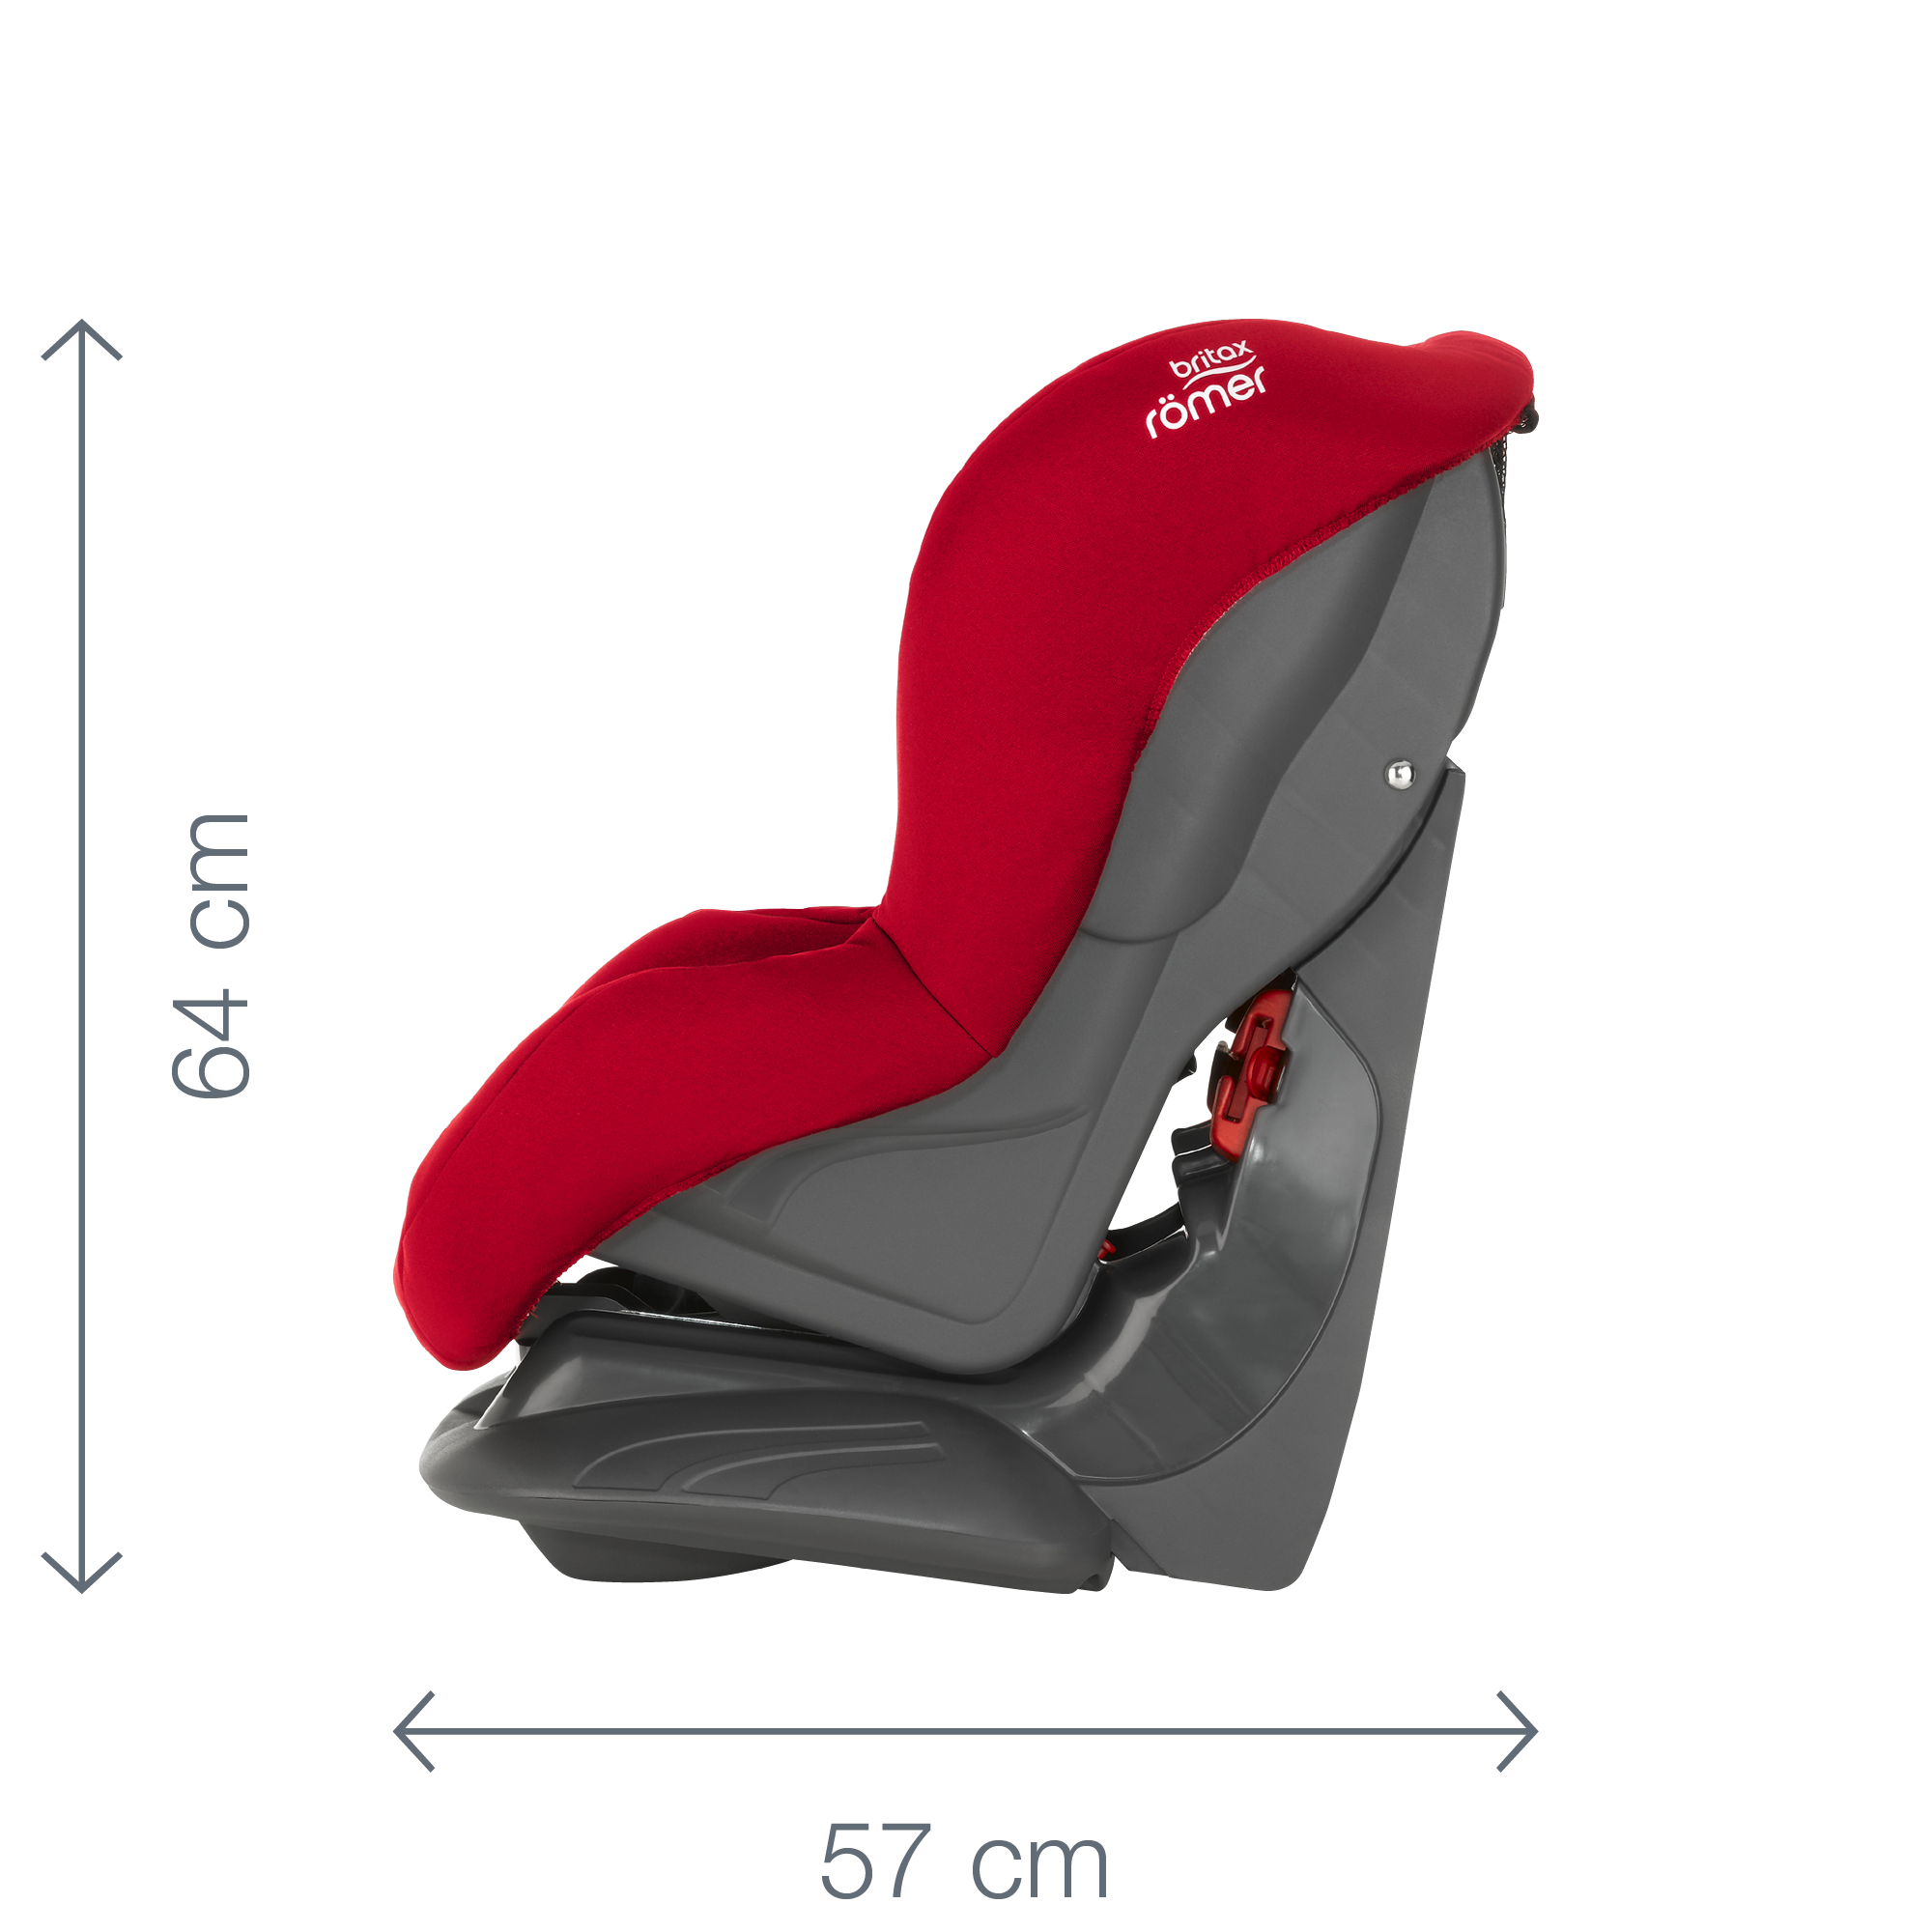 eclipse car seat britax r mer rh britax roemer co uk britax eclipse instruction manual britax eclipse user manual